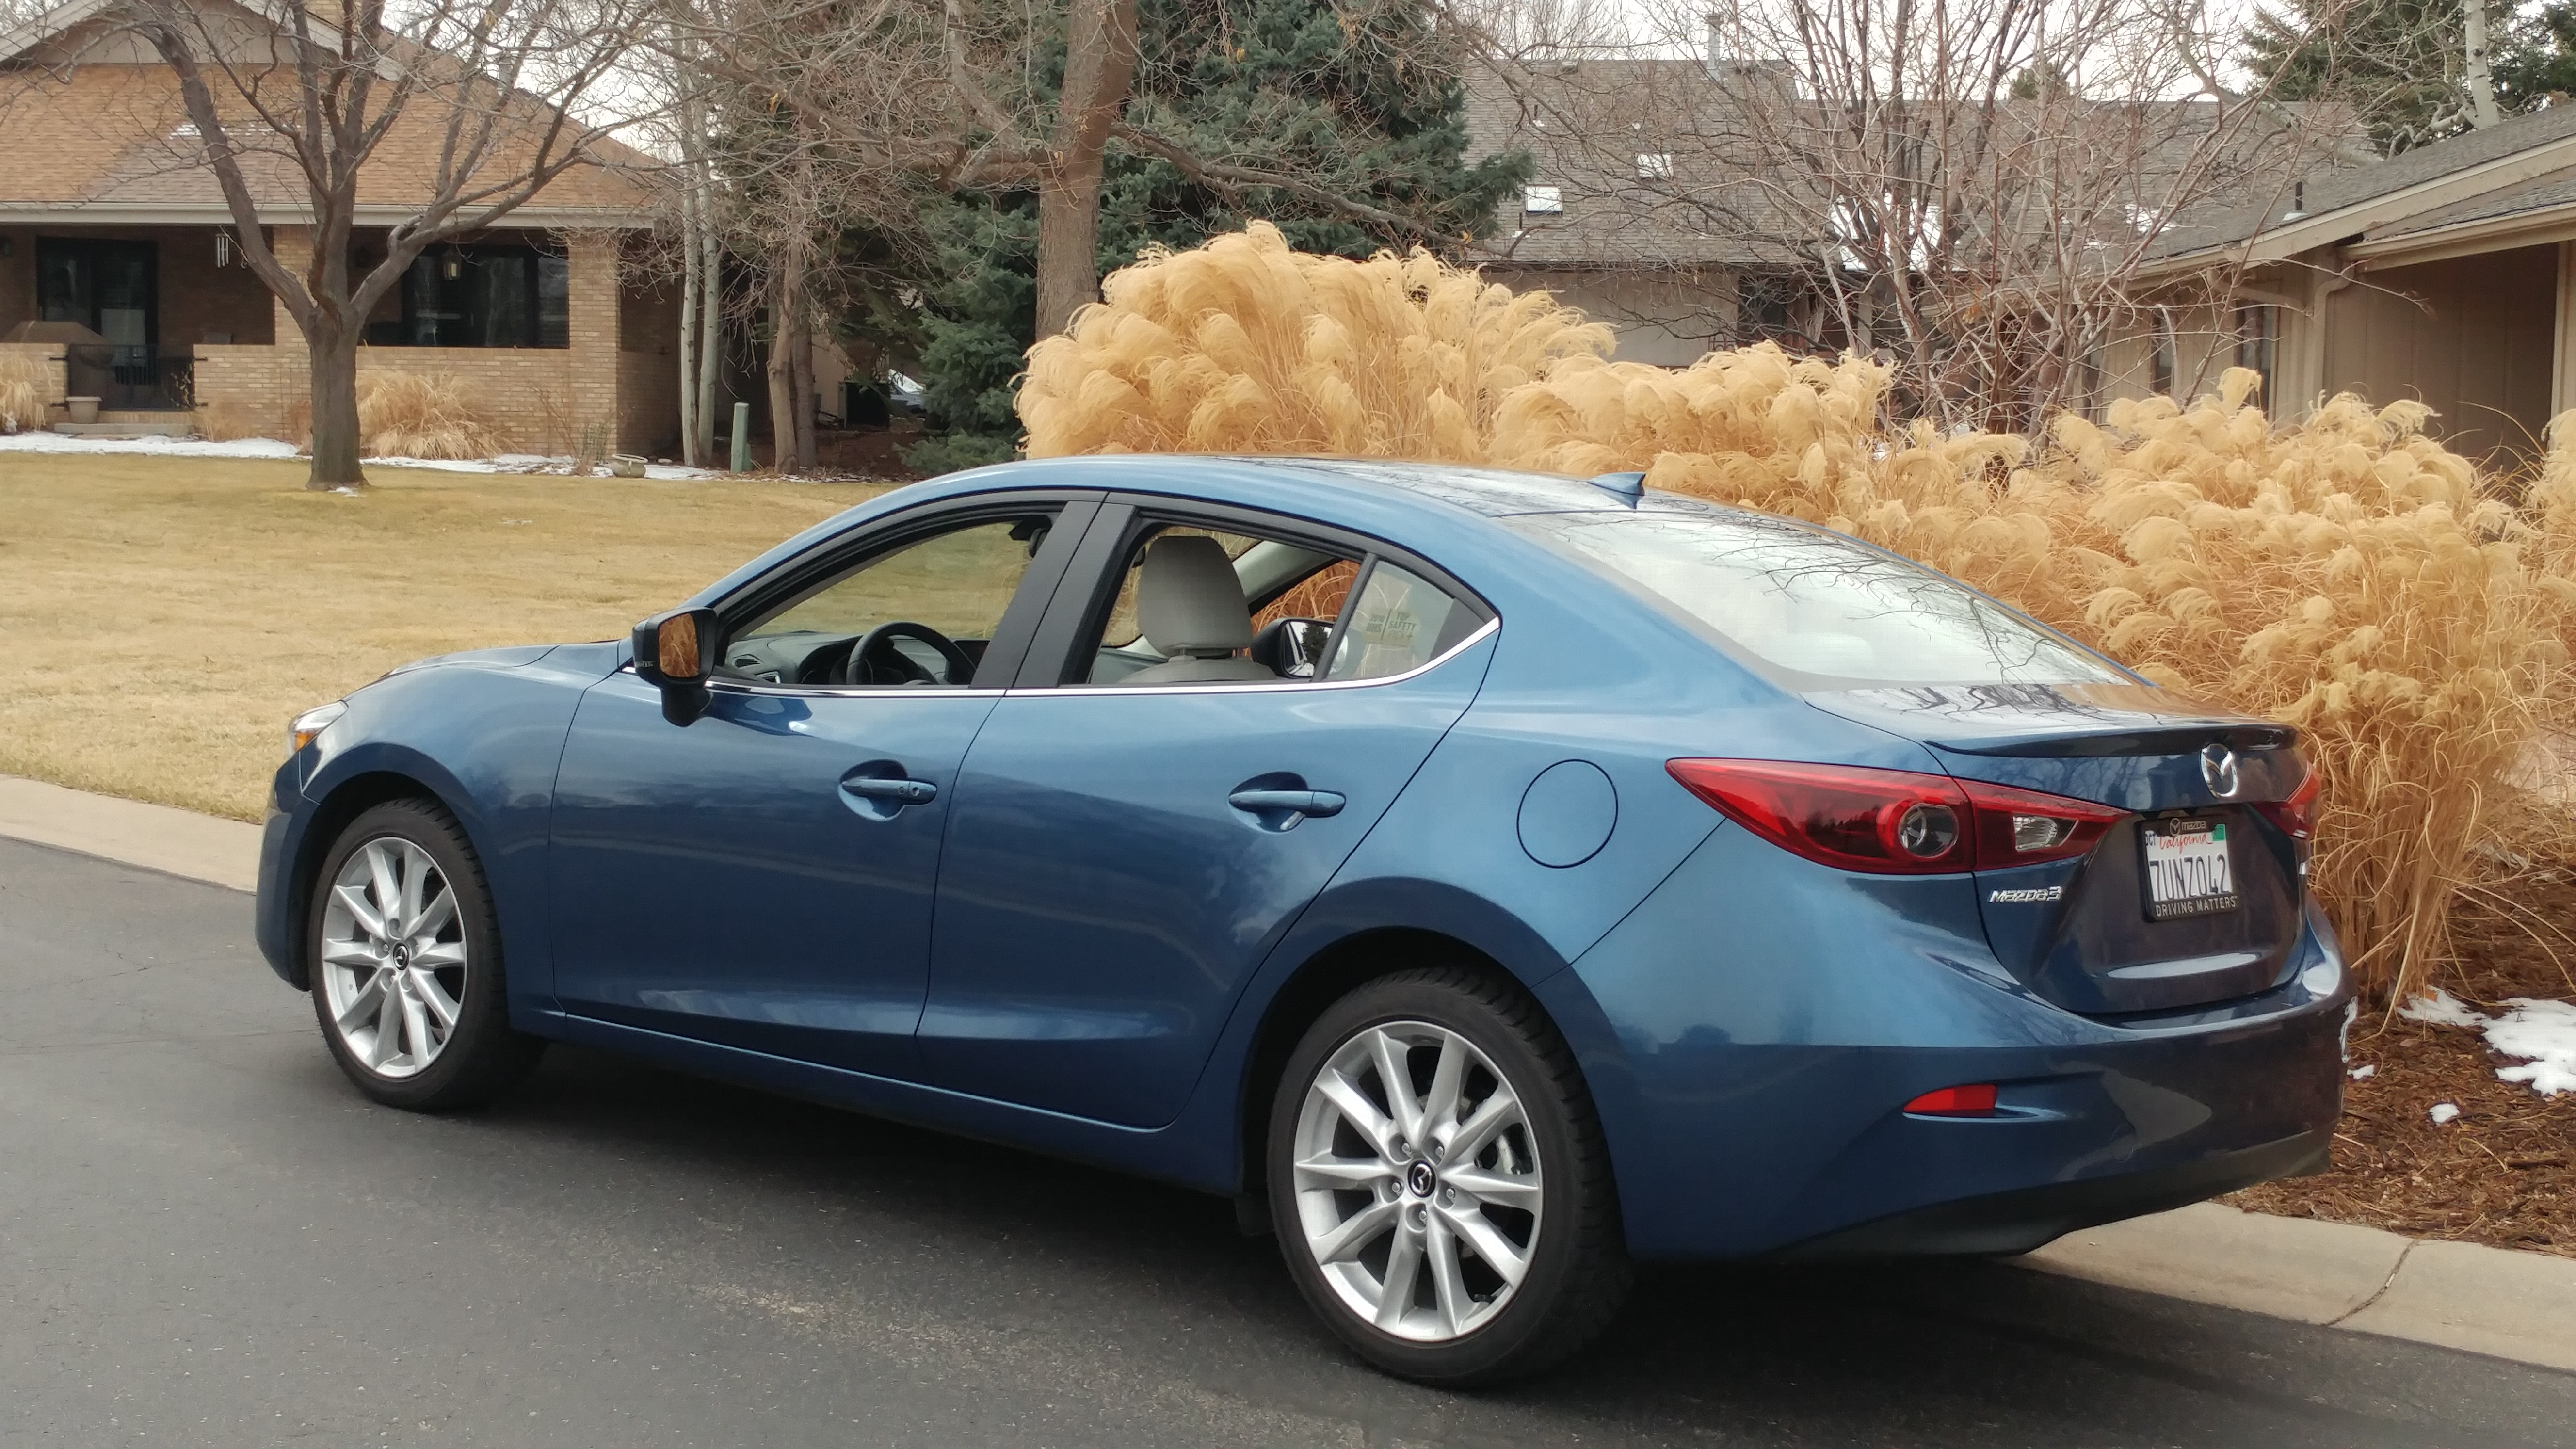 2017 mazda 3 grand touring 4 door sedan stu 39 s reviews. Black Bedroom Furniture Sets. Home Design Ideas